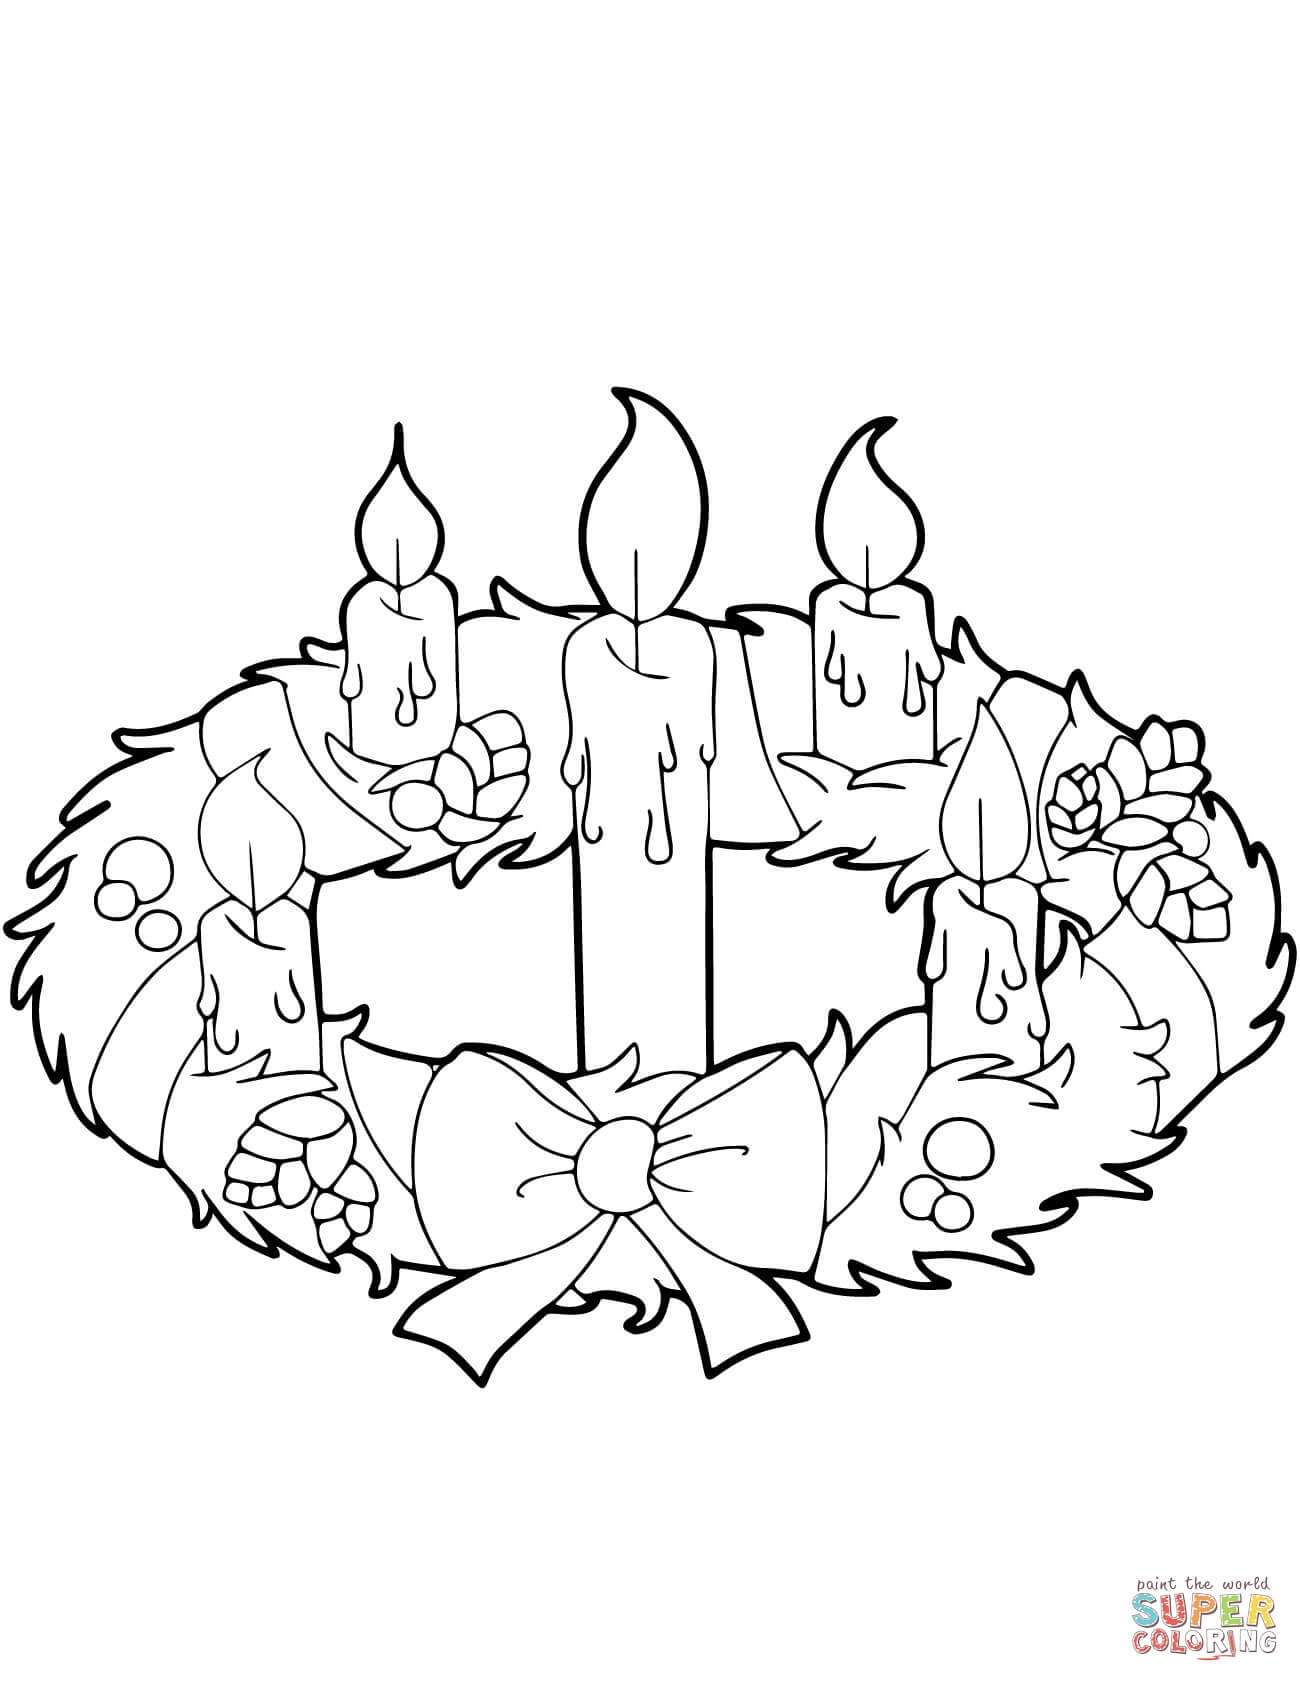 Advent Wreath And Candles Coloring Page | Free Printable Coloring Pages - Free Advent Wreath Printables